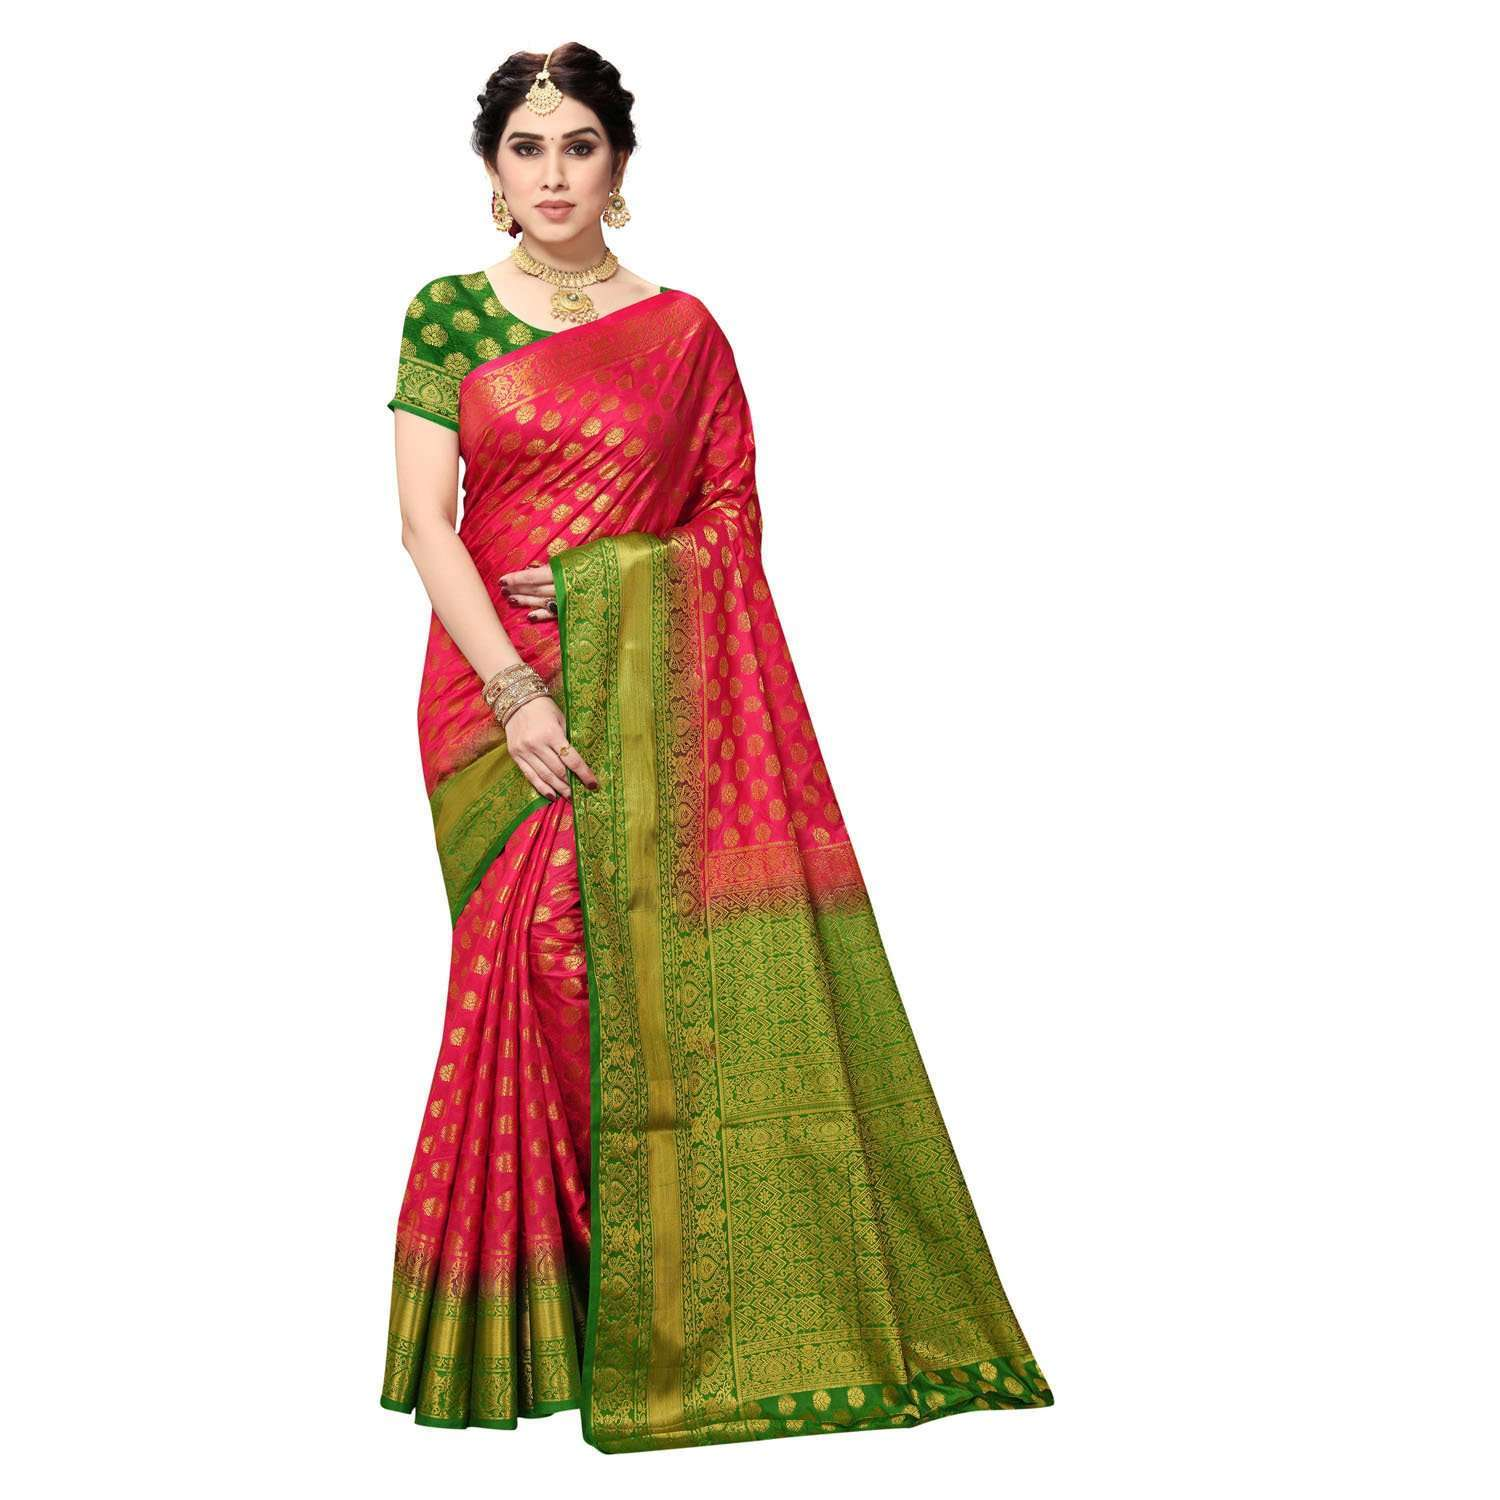 arars Women's Kanchipuram Pattu banarasi Silk Saree With Blouse (516_strawberry&green )